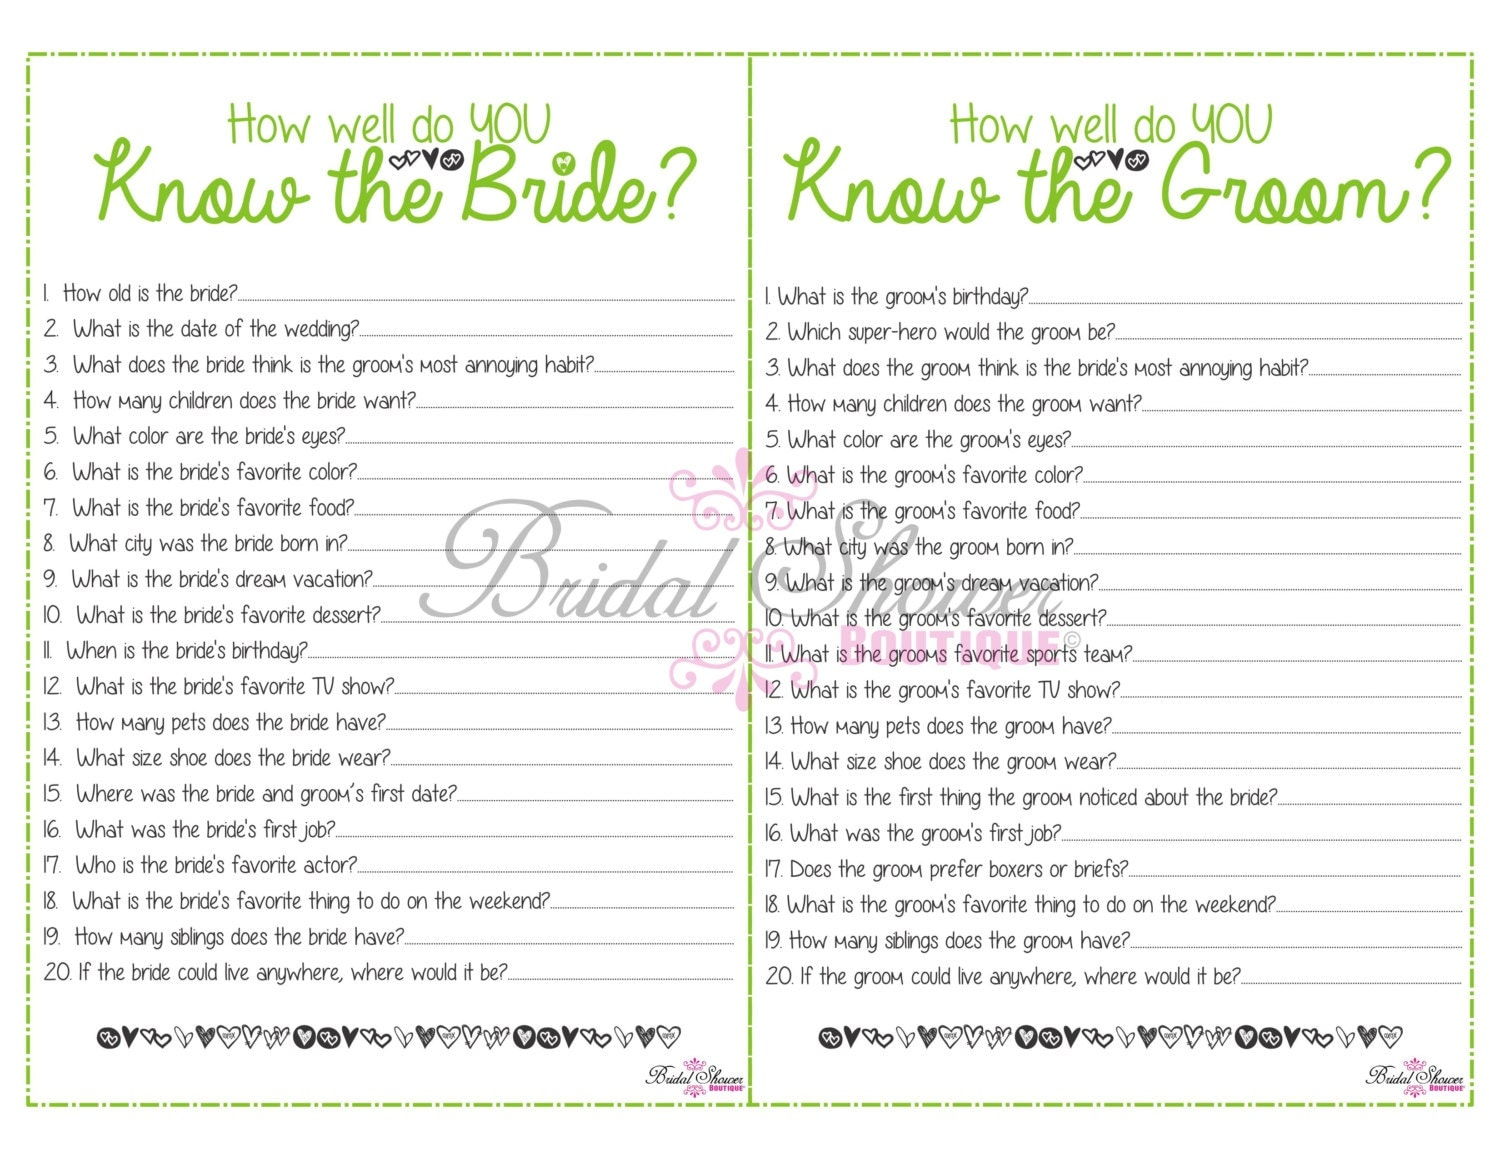 Questions To Ask The Groom For Bridal Shower